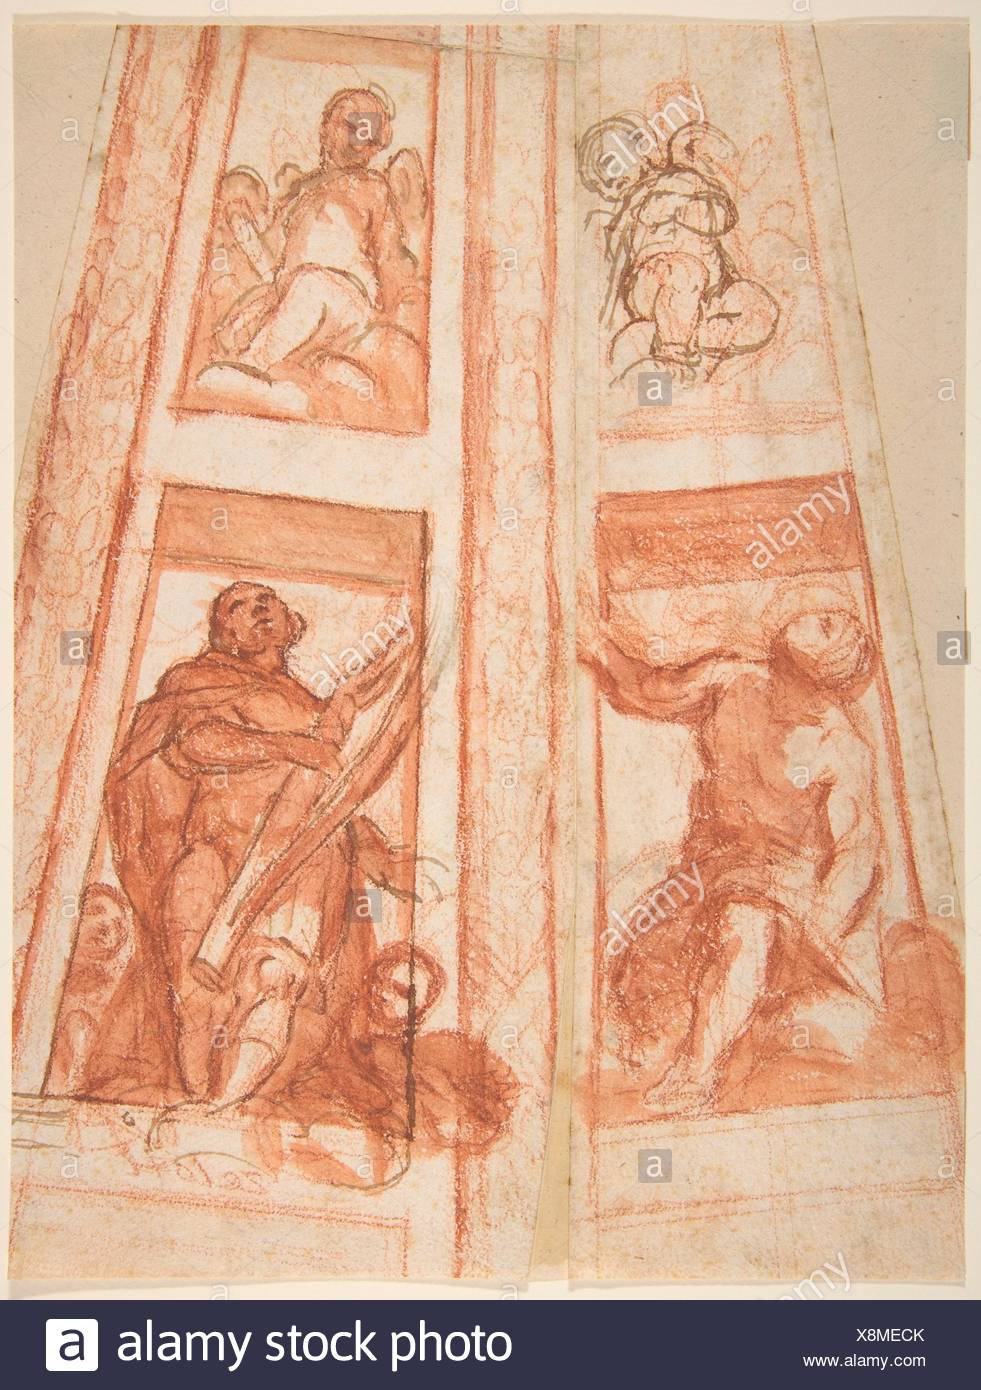 Design for the Decoration of a Cupola with a Prophet, King David and Two Putti. Artist: Mattia Preti (Il Cavalier Calabrese) (Italian, Taverna - Stock Image